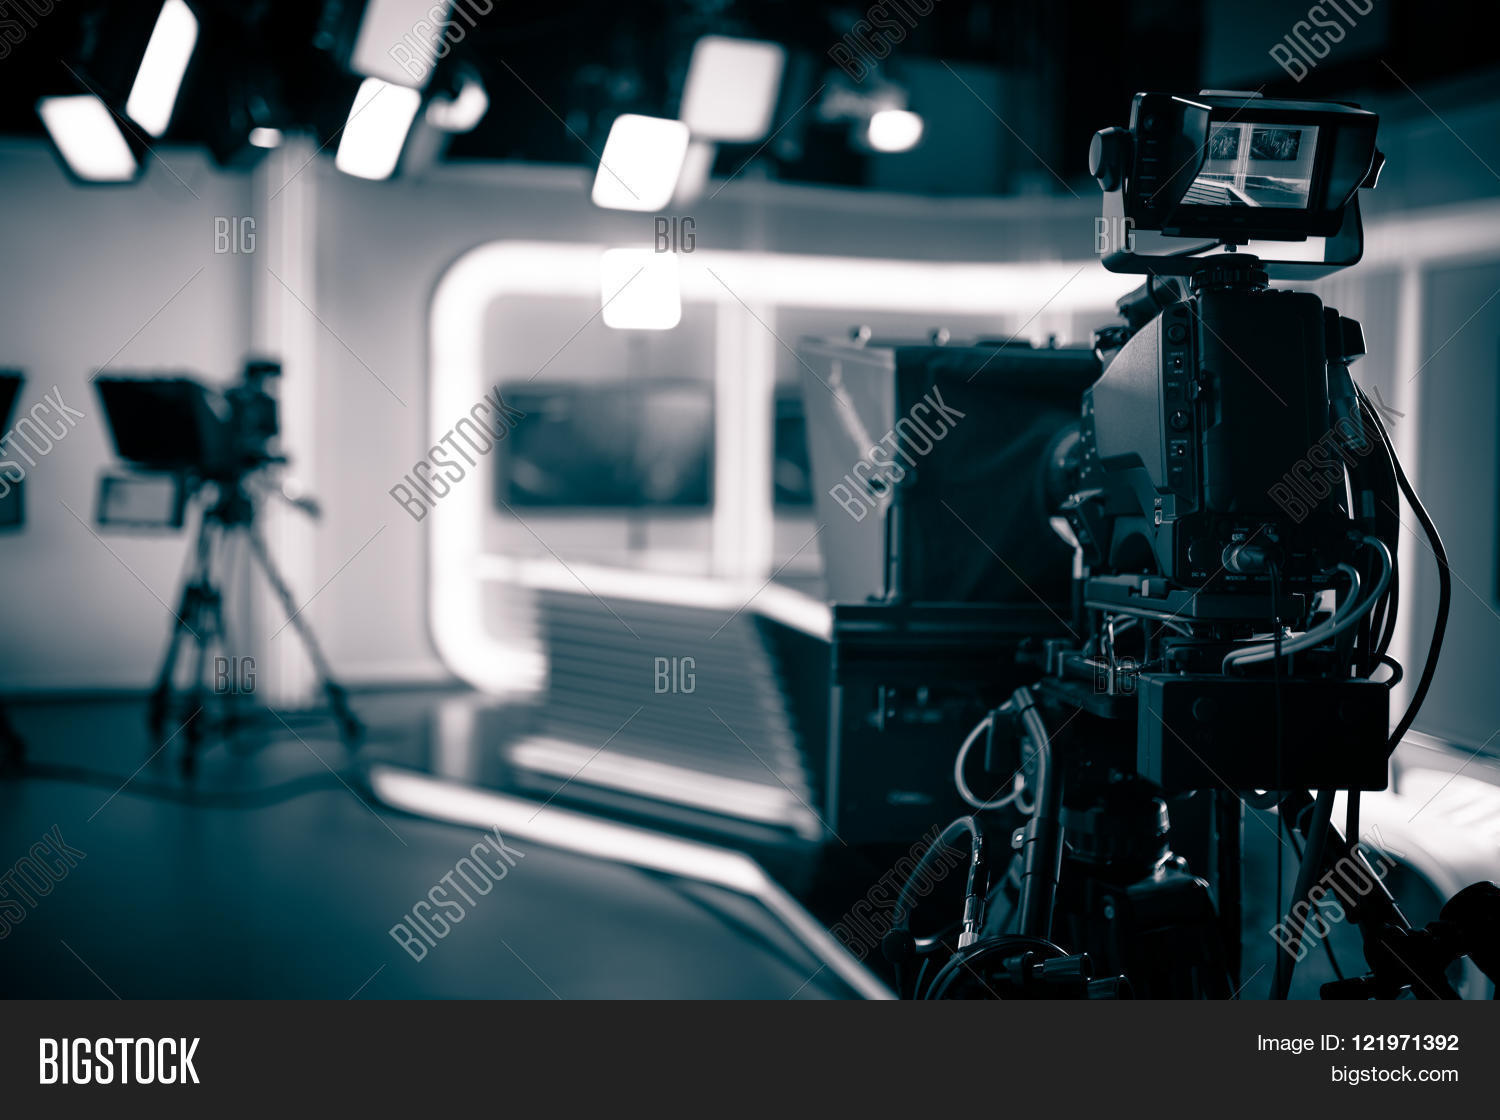 Tv studio live broadcasting image photo bigstock for Camera it web tv